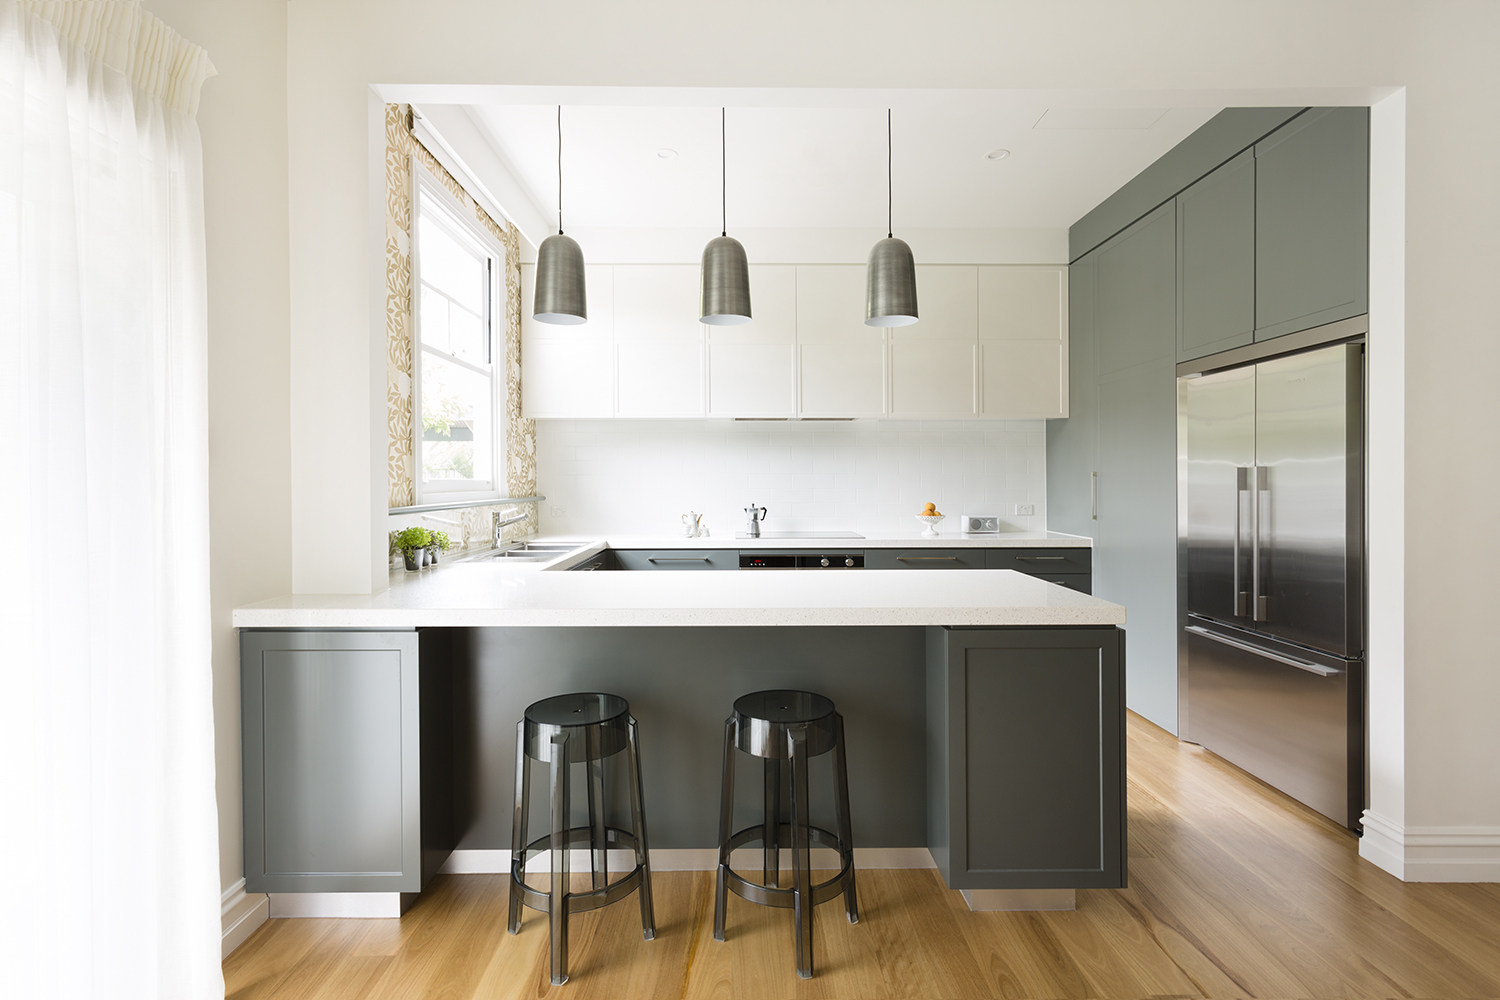 Croydon kitchen renovation and kitchen makeover by interior designer Melbourne